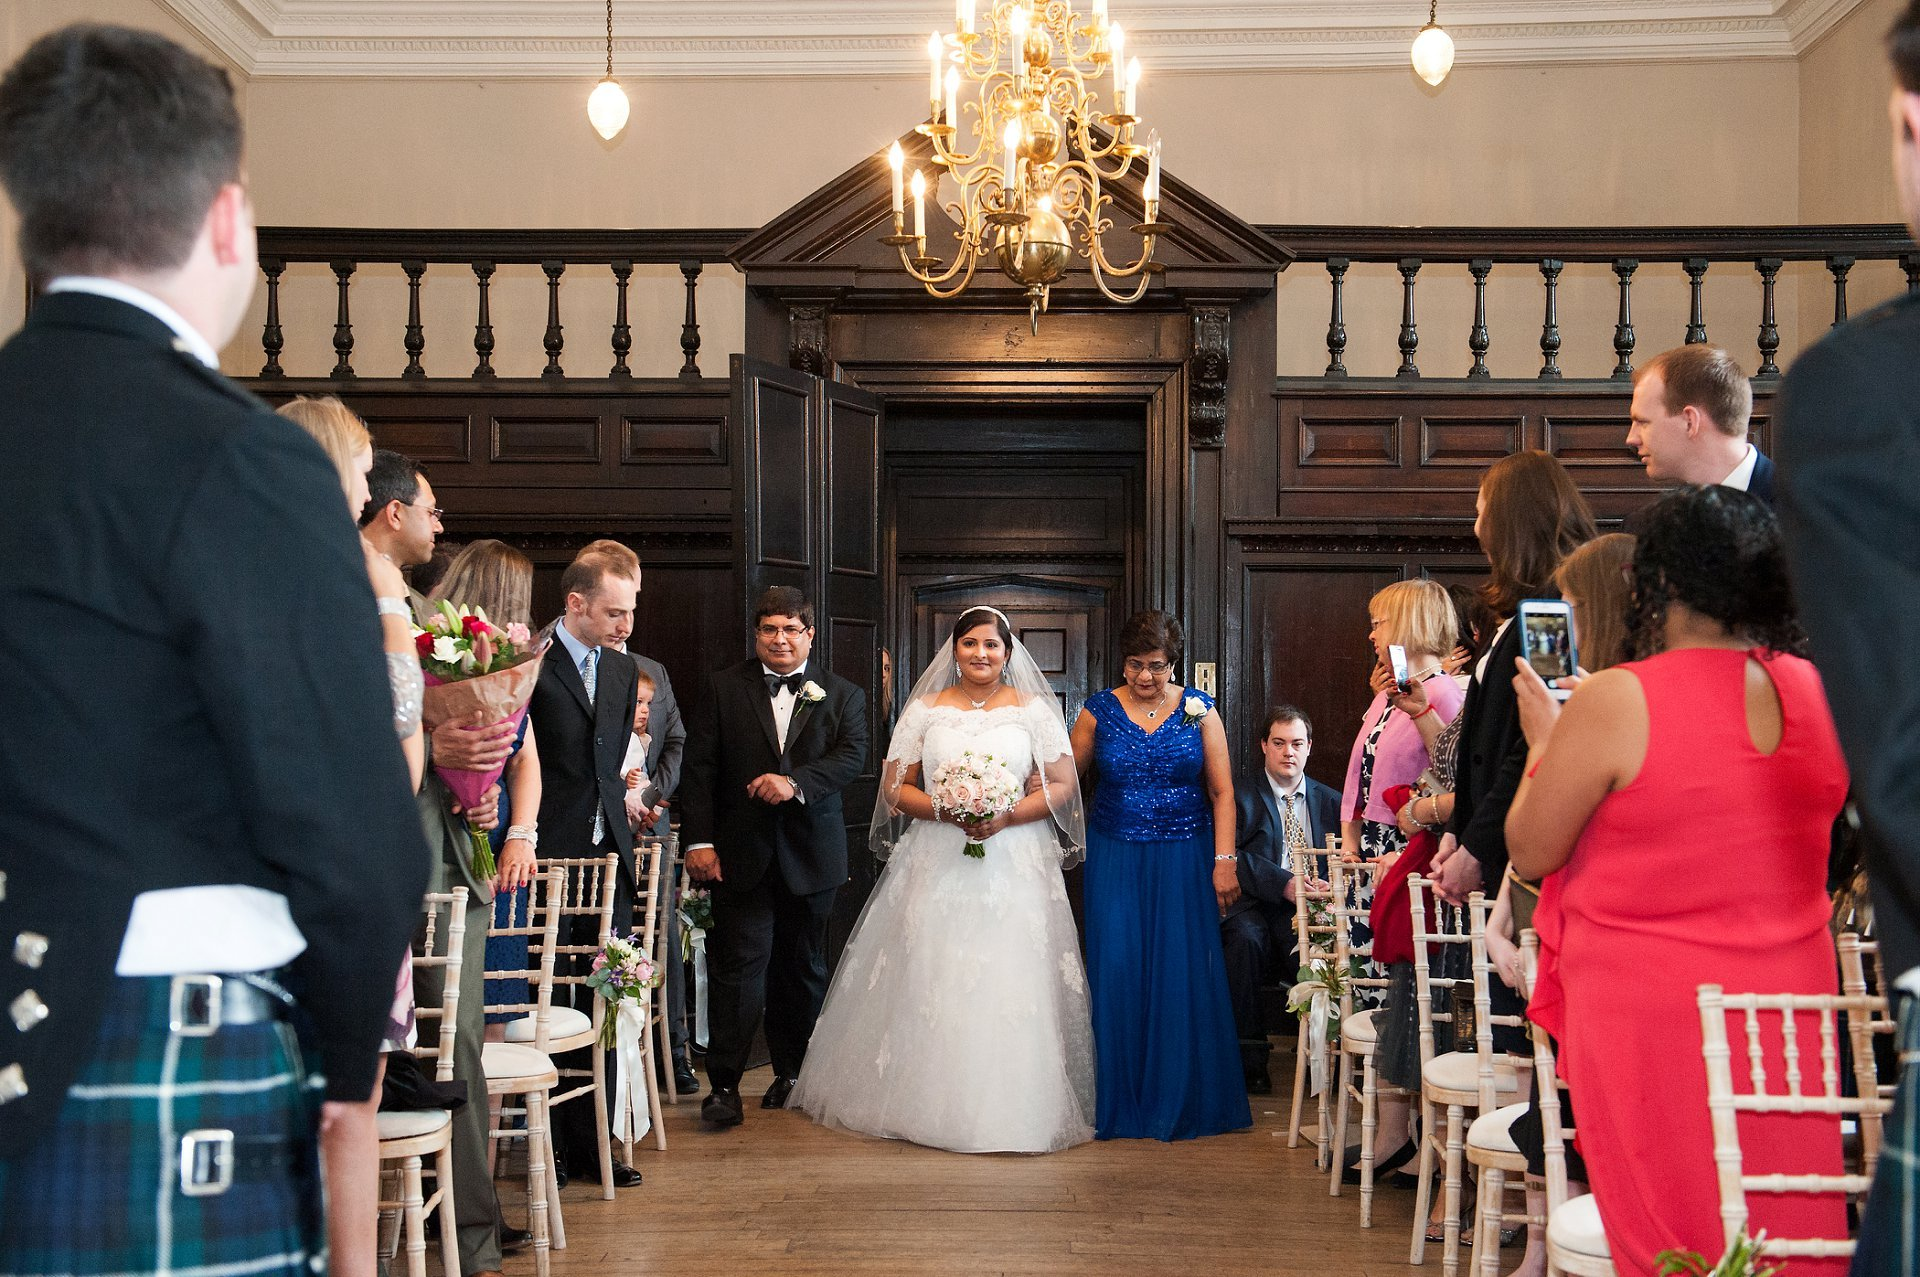 Bride, Feriel, and her parents enter the Great Hall at Fulham Palace for her marriage to Adam